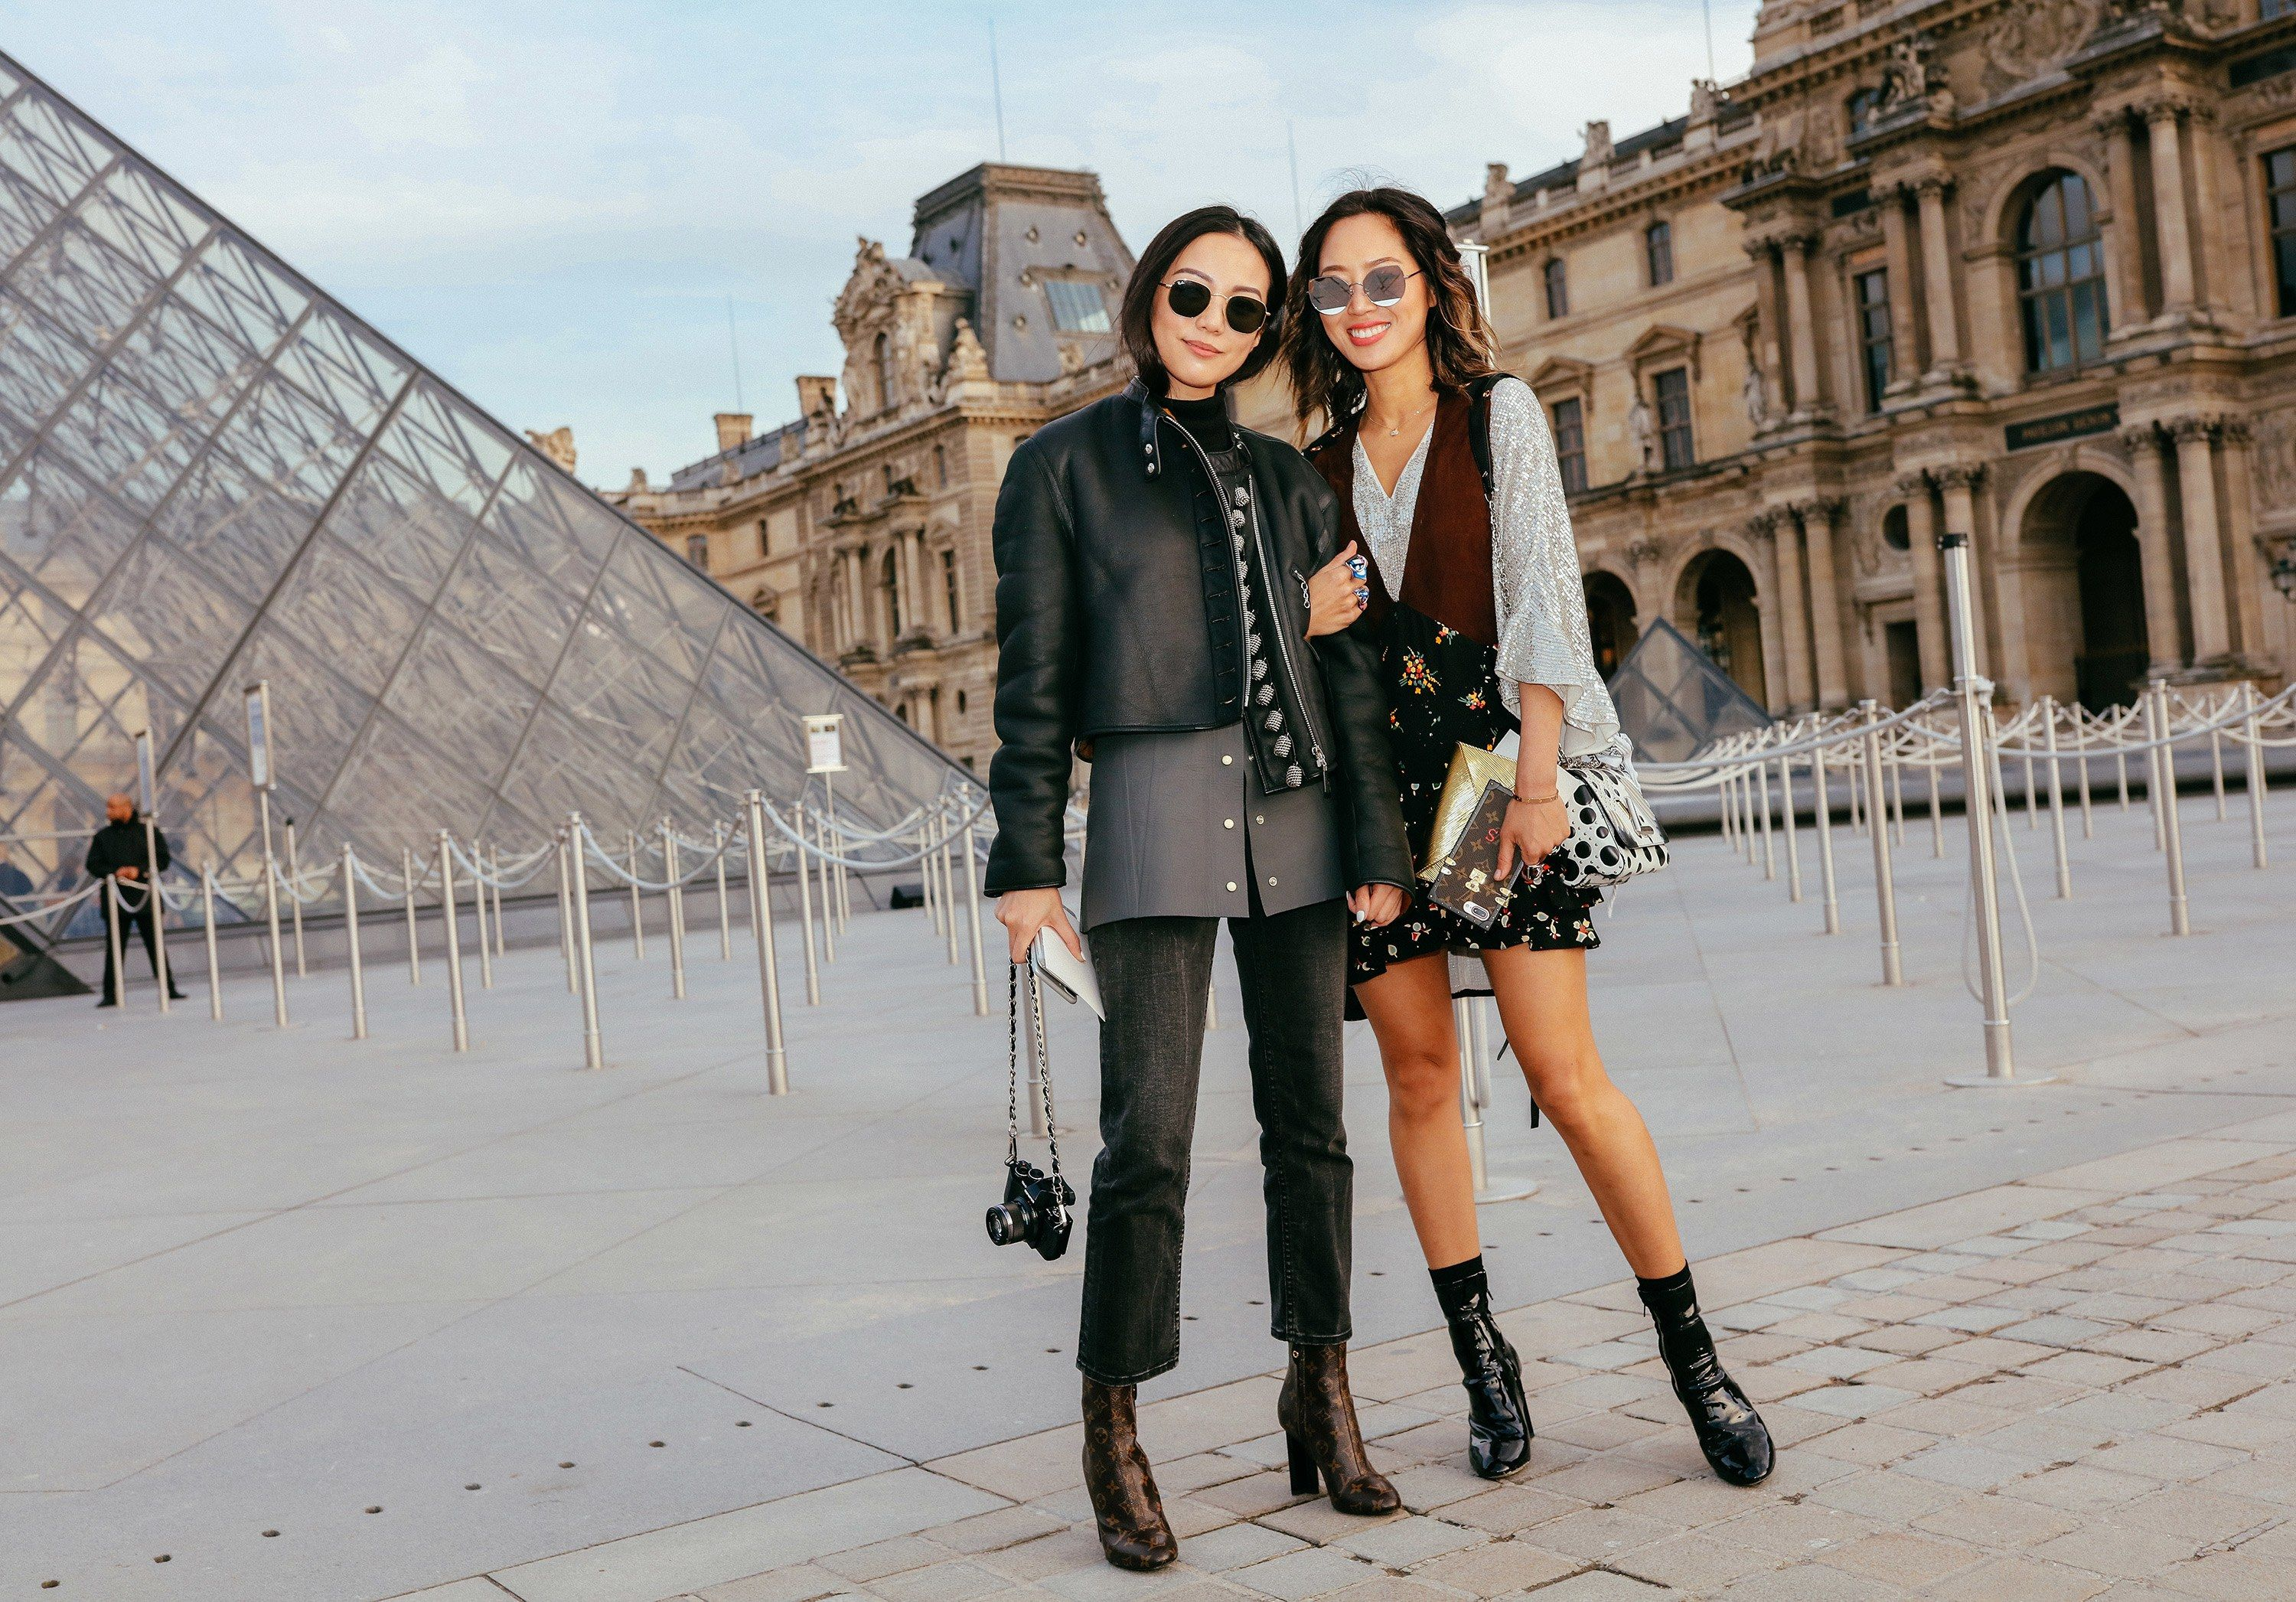 cba86f4229b Yoyo Cao in Louis Vuitton and Aimee Song in Louis Vuitton with Gentle  Monster sunglasses